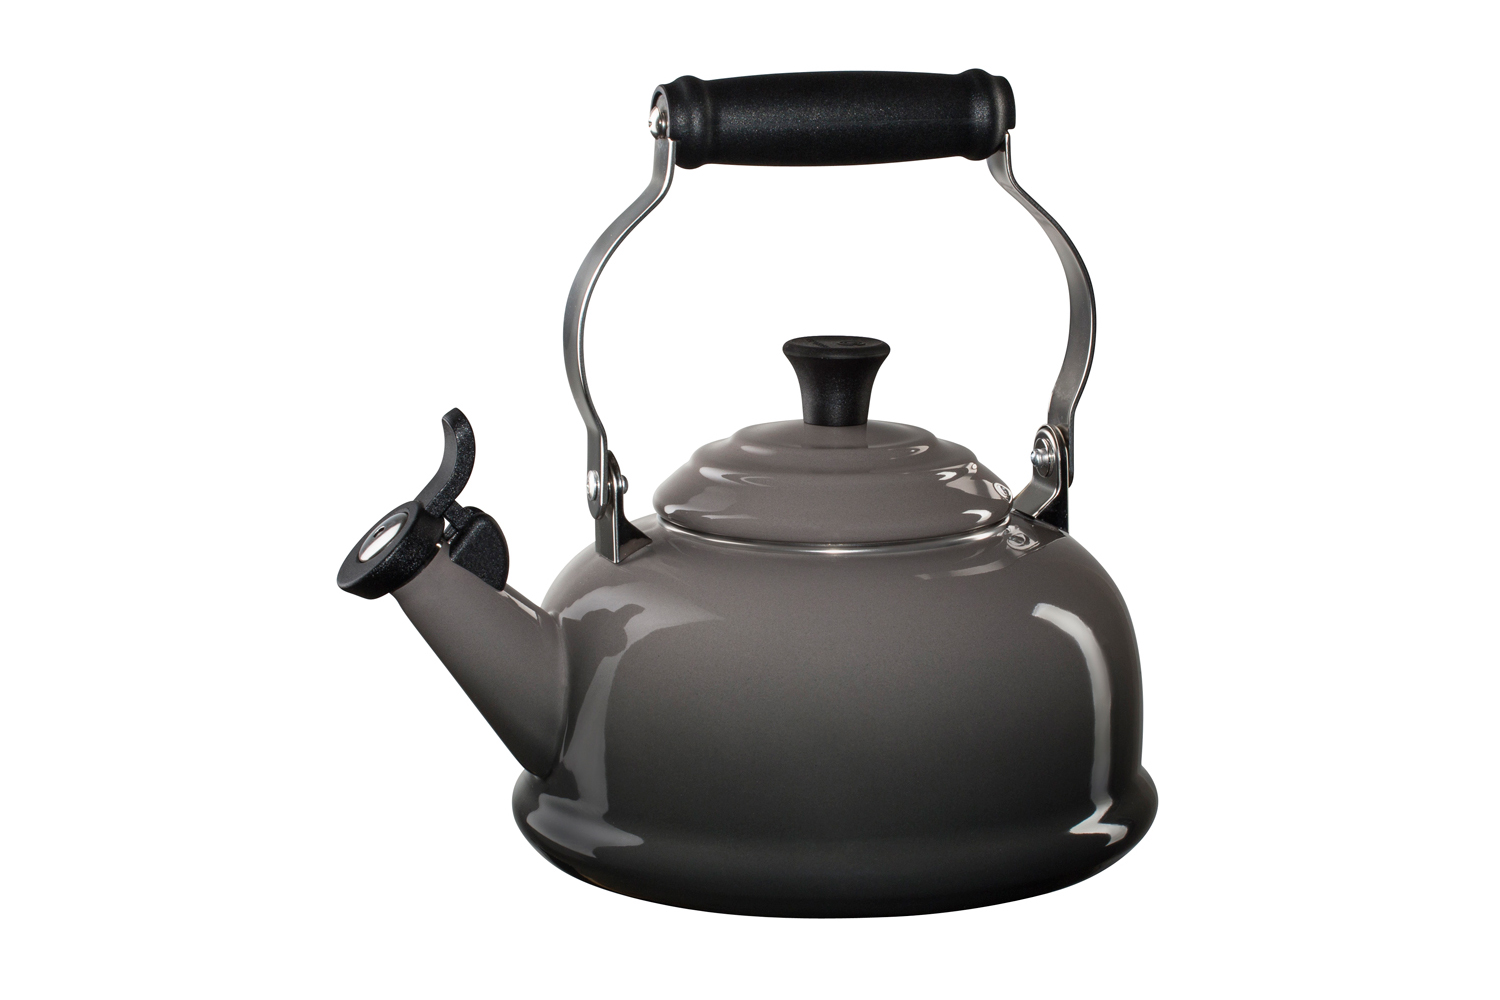 Le Creuset Classic Whistling Tea Kettle - Oyster